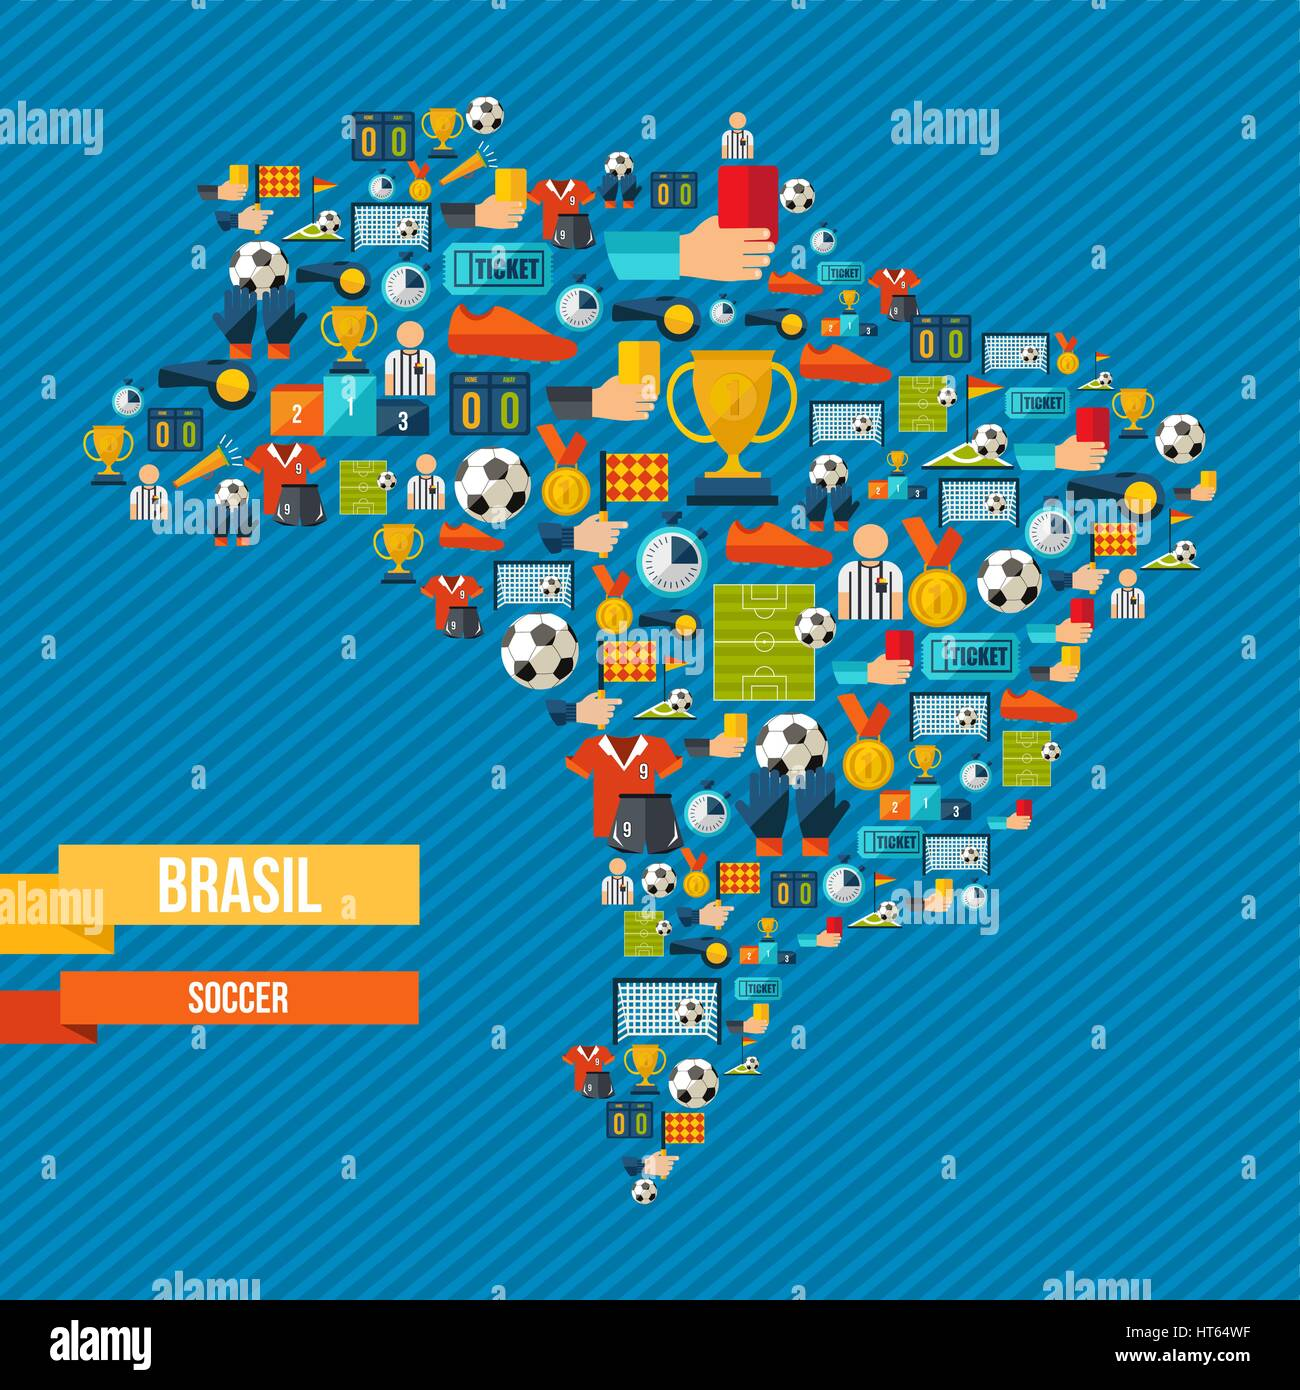 806468a376 Brazil soccer culture icons in country map. Includes sport elements for  football game